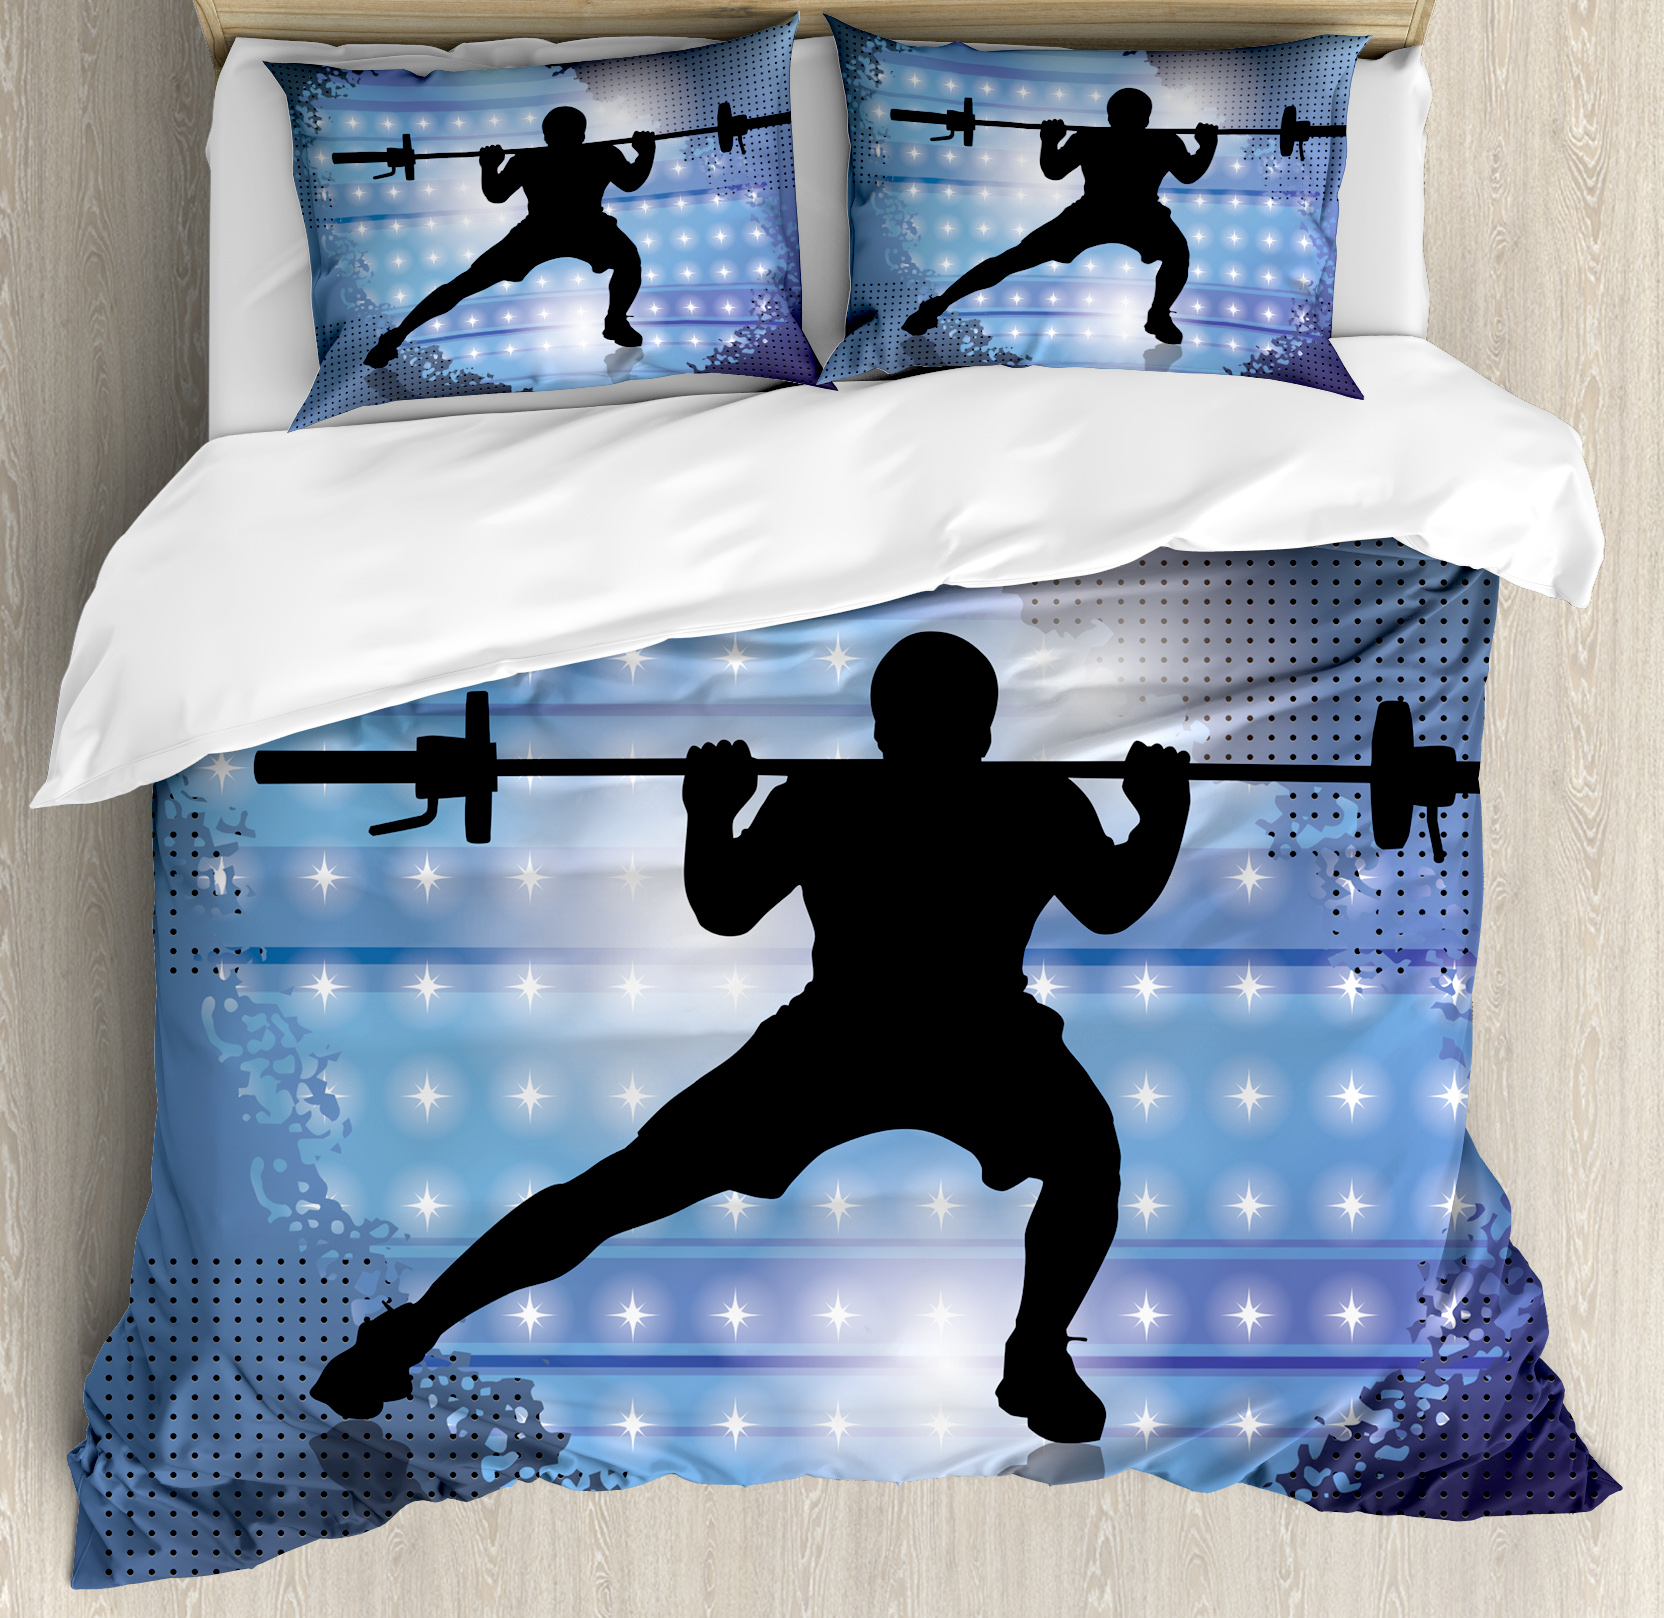 Fitness King Size Duvet Cover Set, Silhouette of Weightli...